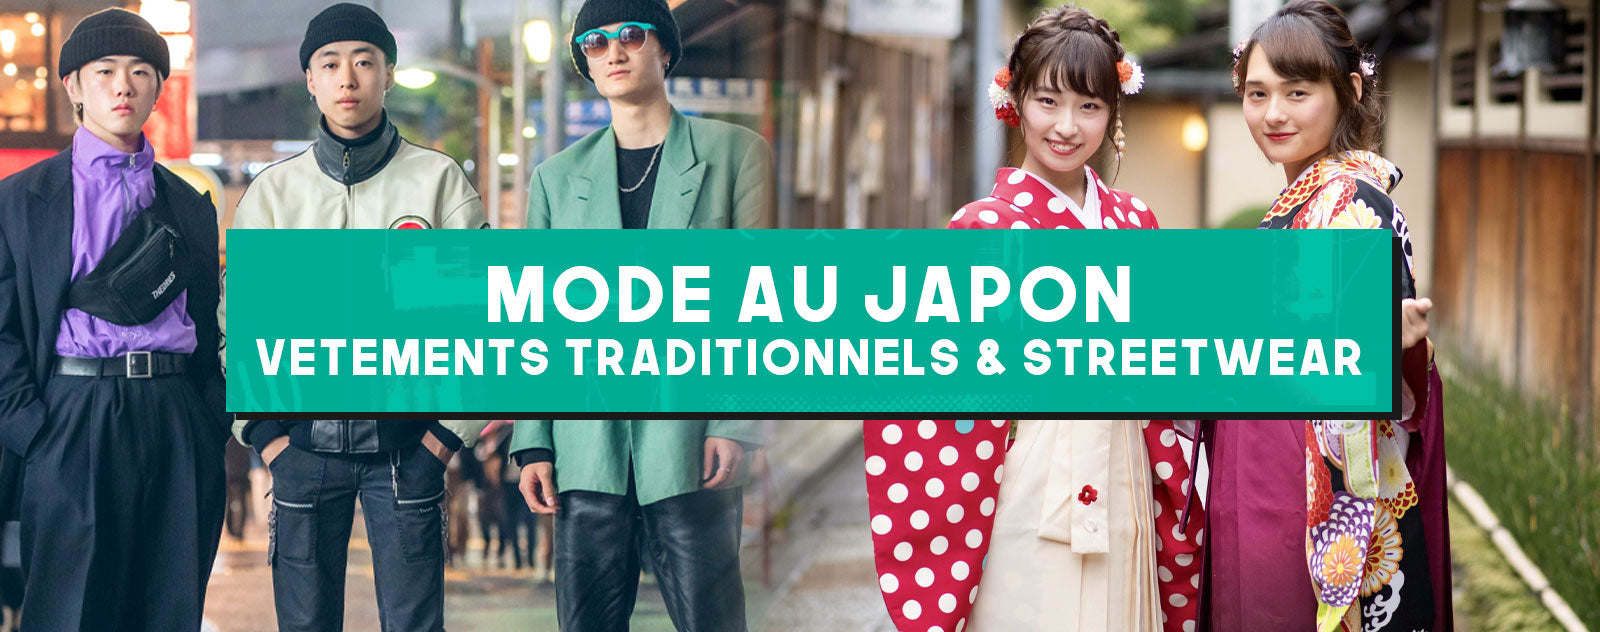 Mode au Japon : Vêtements Traditionnels & Streetwear